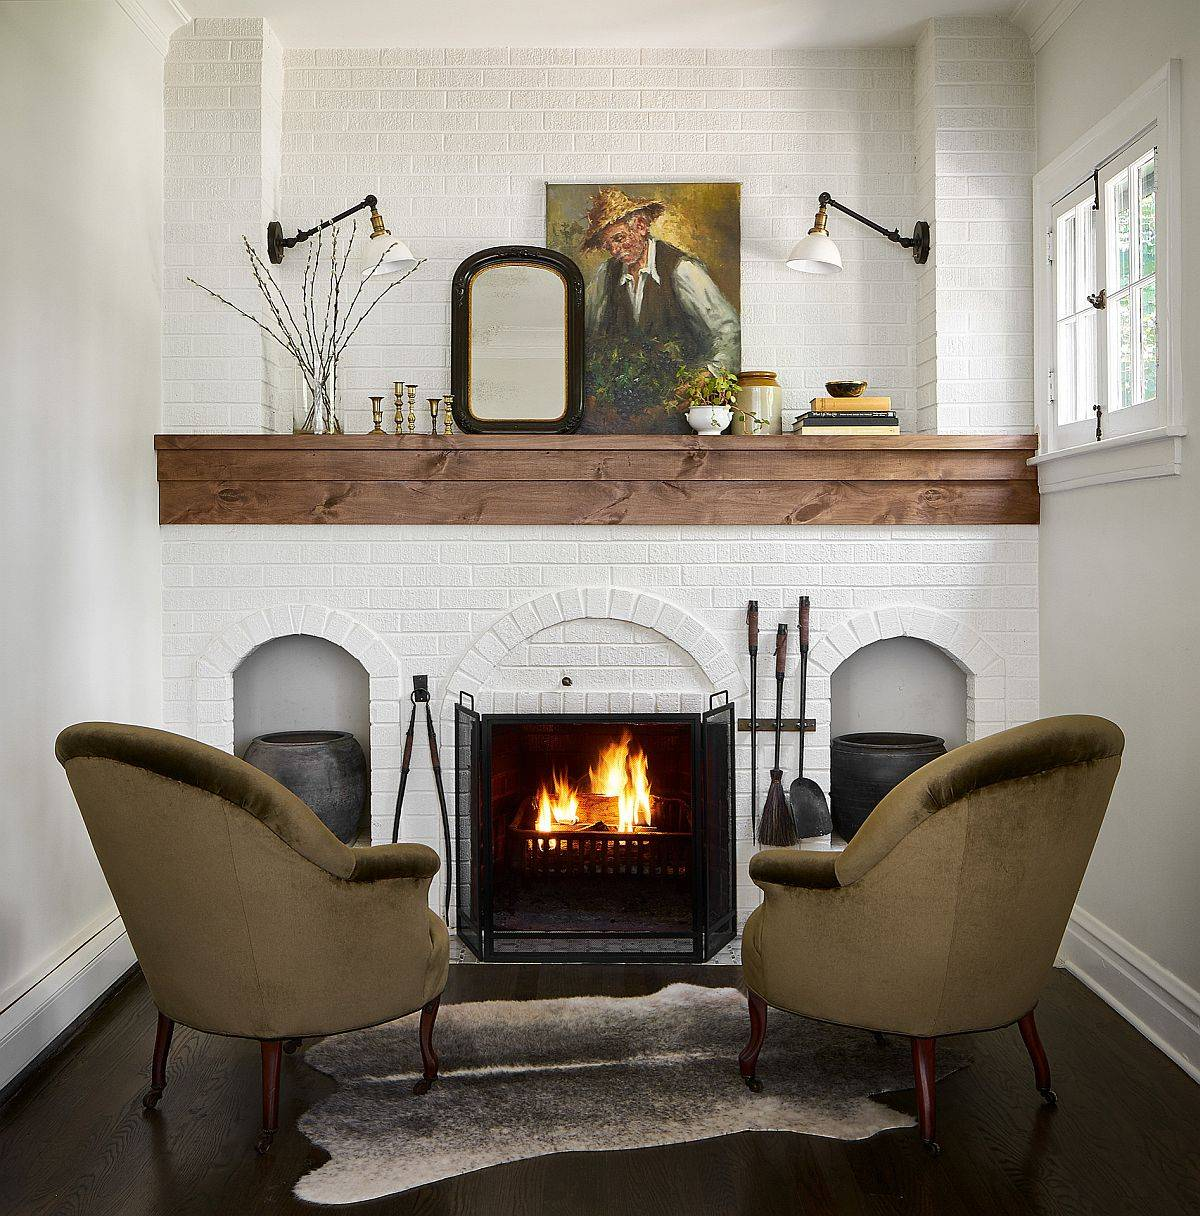 Fireplace-becomes-the-focal-point-of-this-small-English-cottage-style-living-room-36533